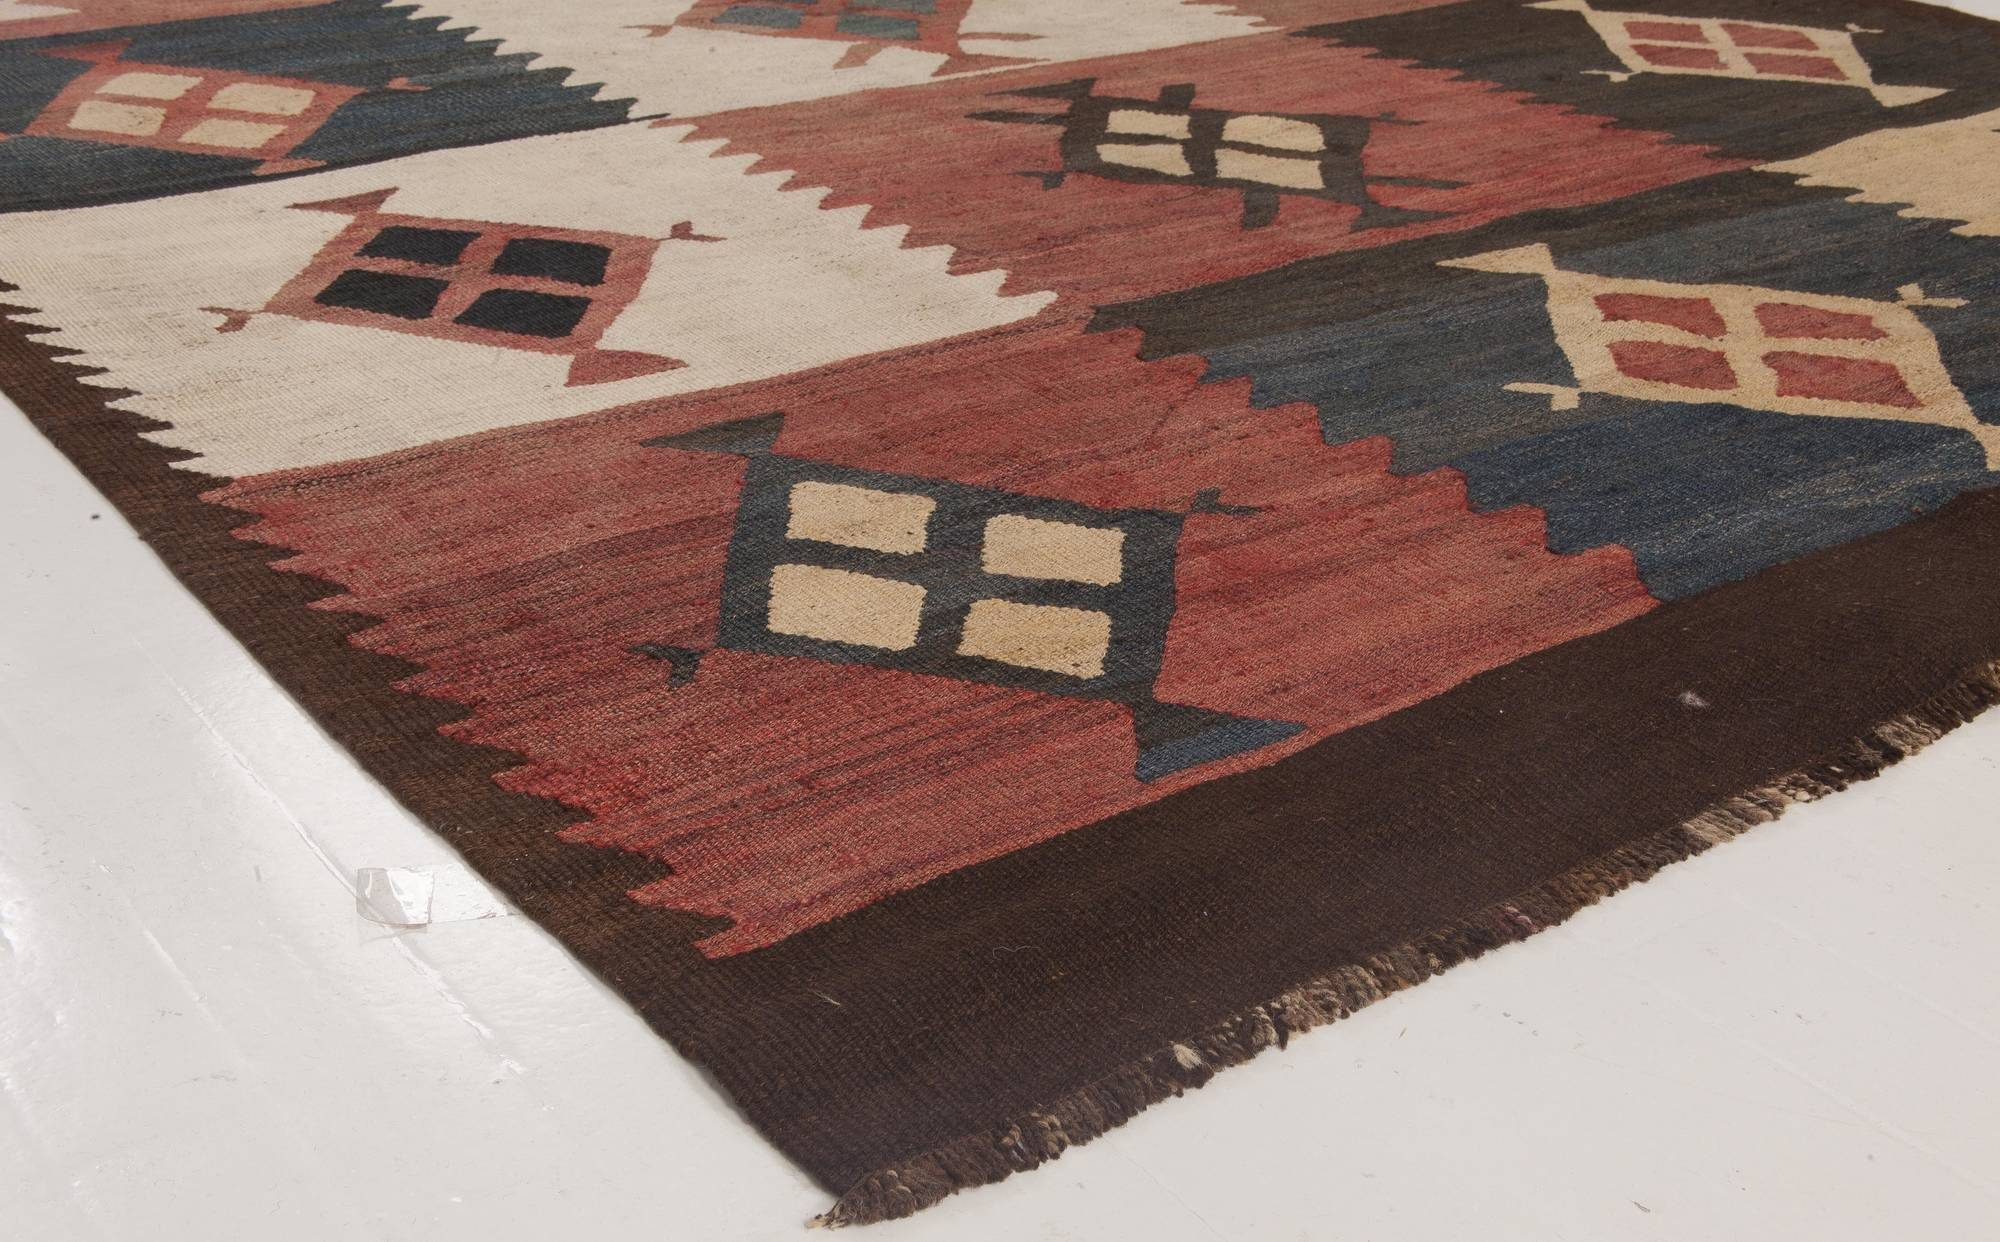 Antique Etno Turkish Kilim Rug in Warm Earthy Colors BB6520